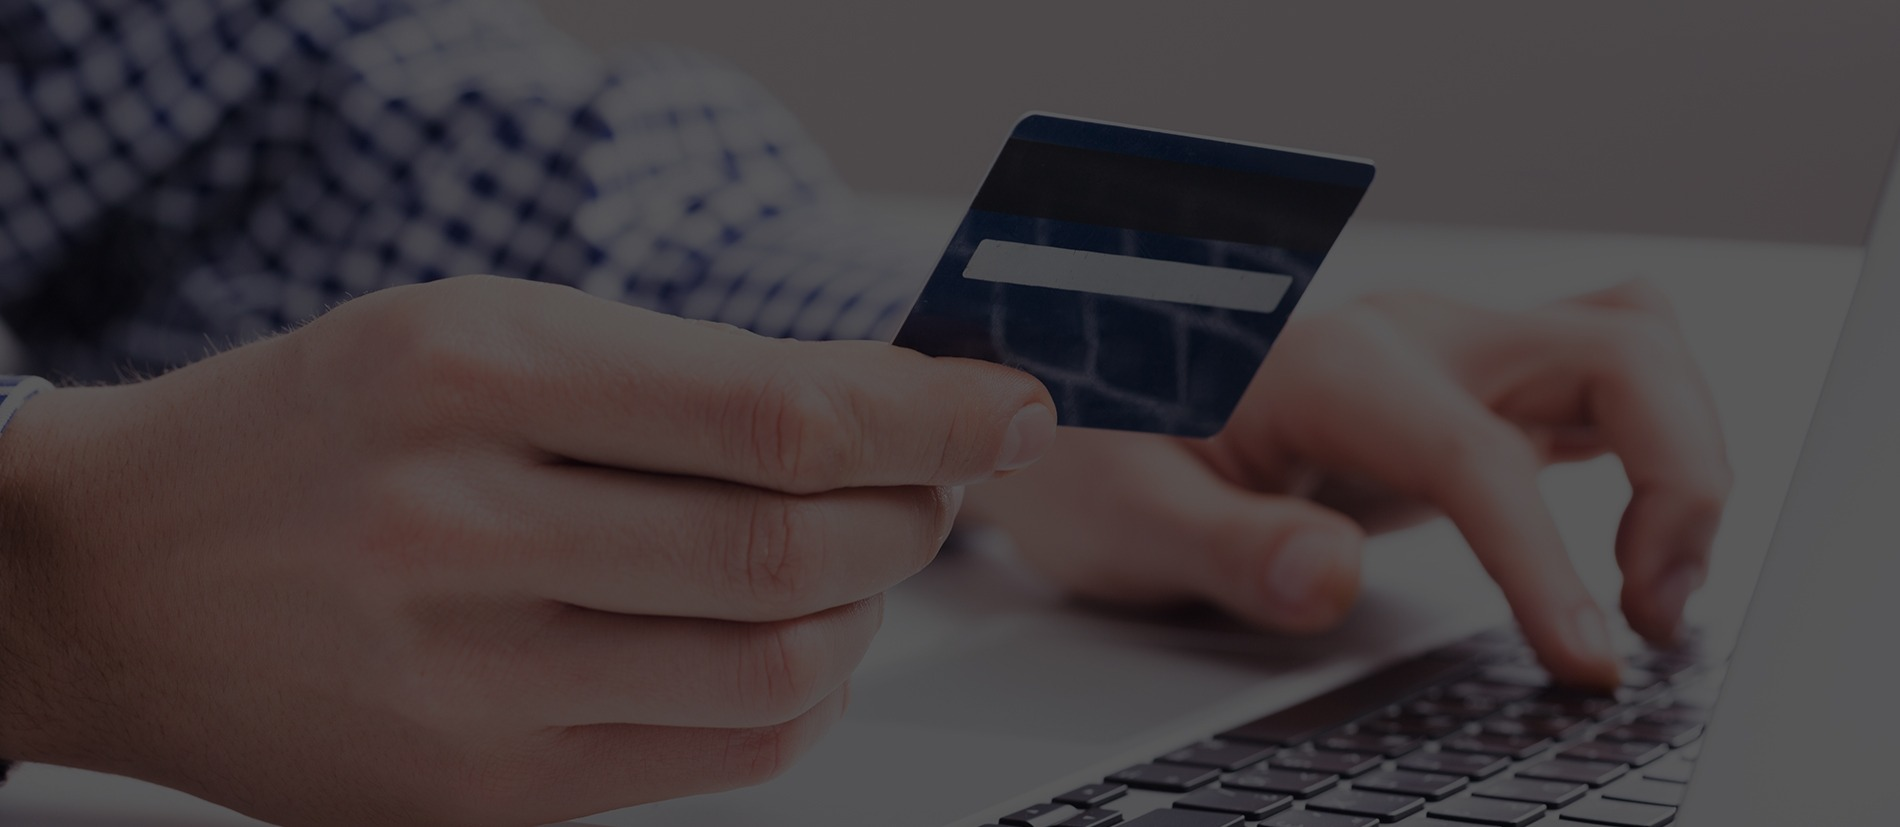 ELECTRONIC PAYMENTS header - ELECTRONIC-PAYMENTS-header